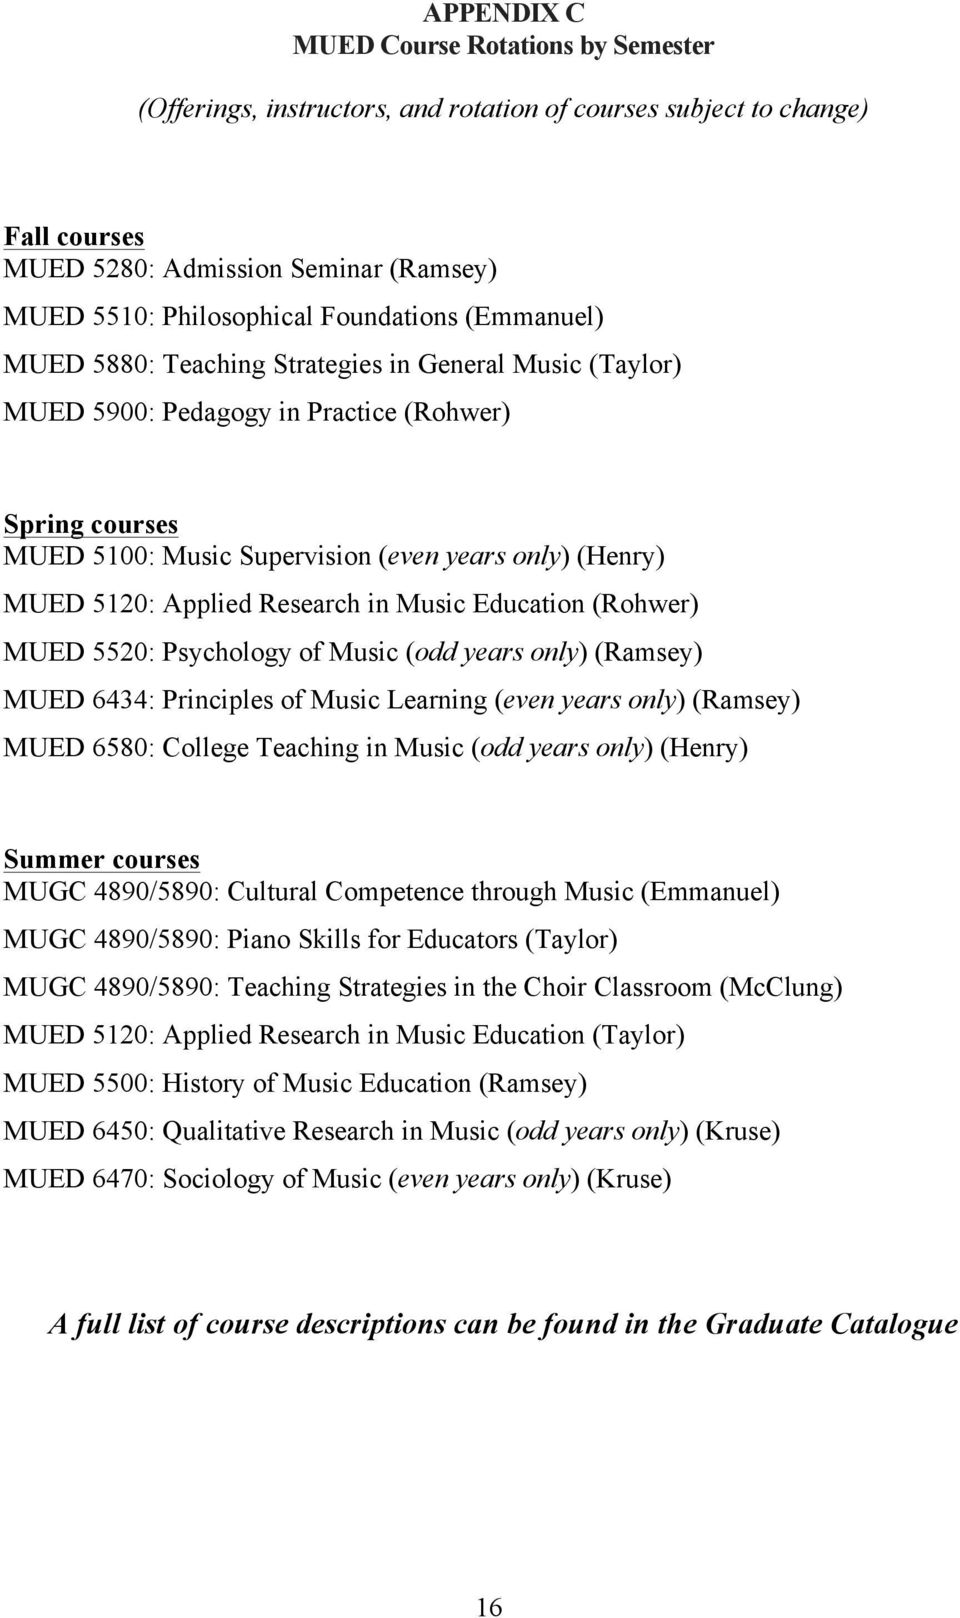 5120: Applied Research in Music Education (Rohwer) MUED 5520: Psychology of Music (odd years only) (Ramsey) MUED 6434: Principles of Music Learning (even years only) (Ramsey) MUED 6580: College